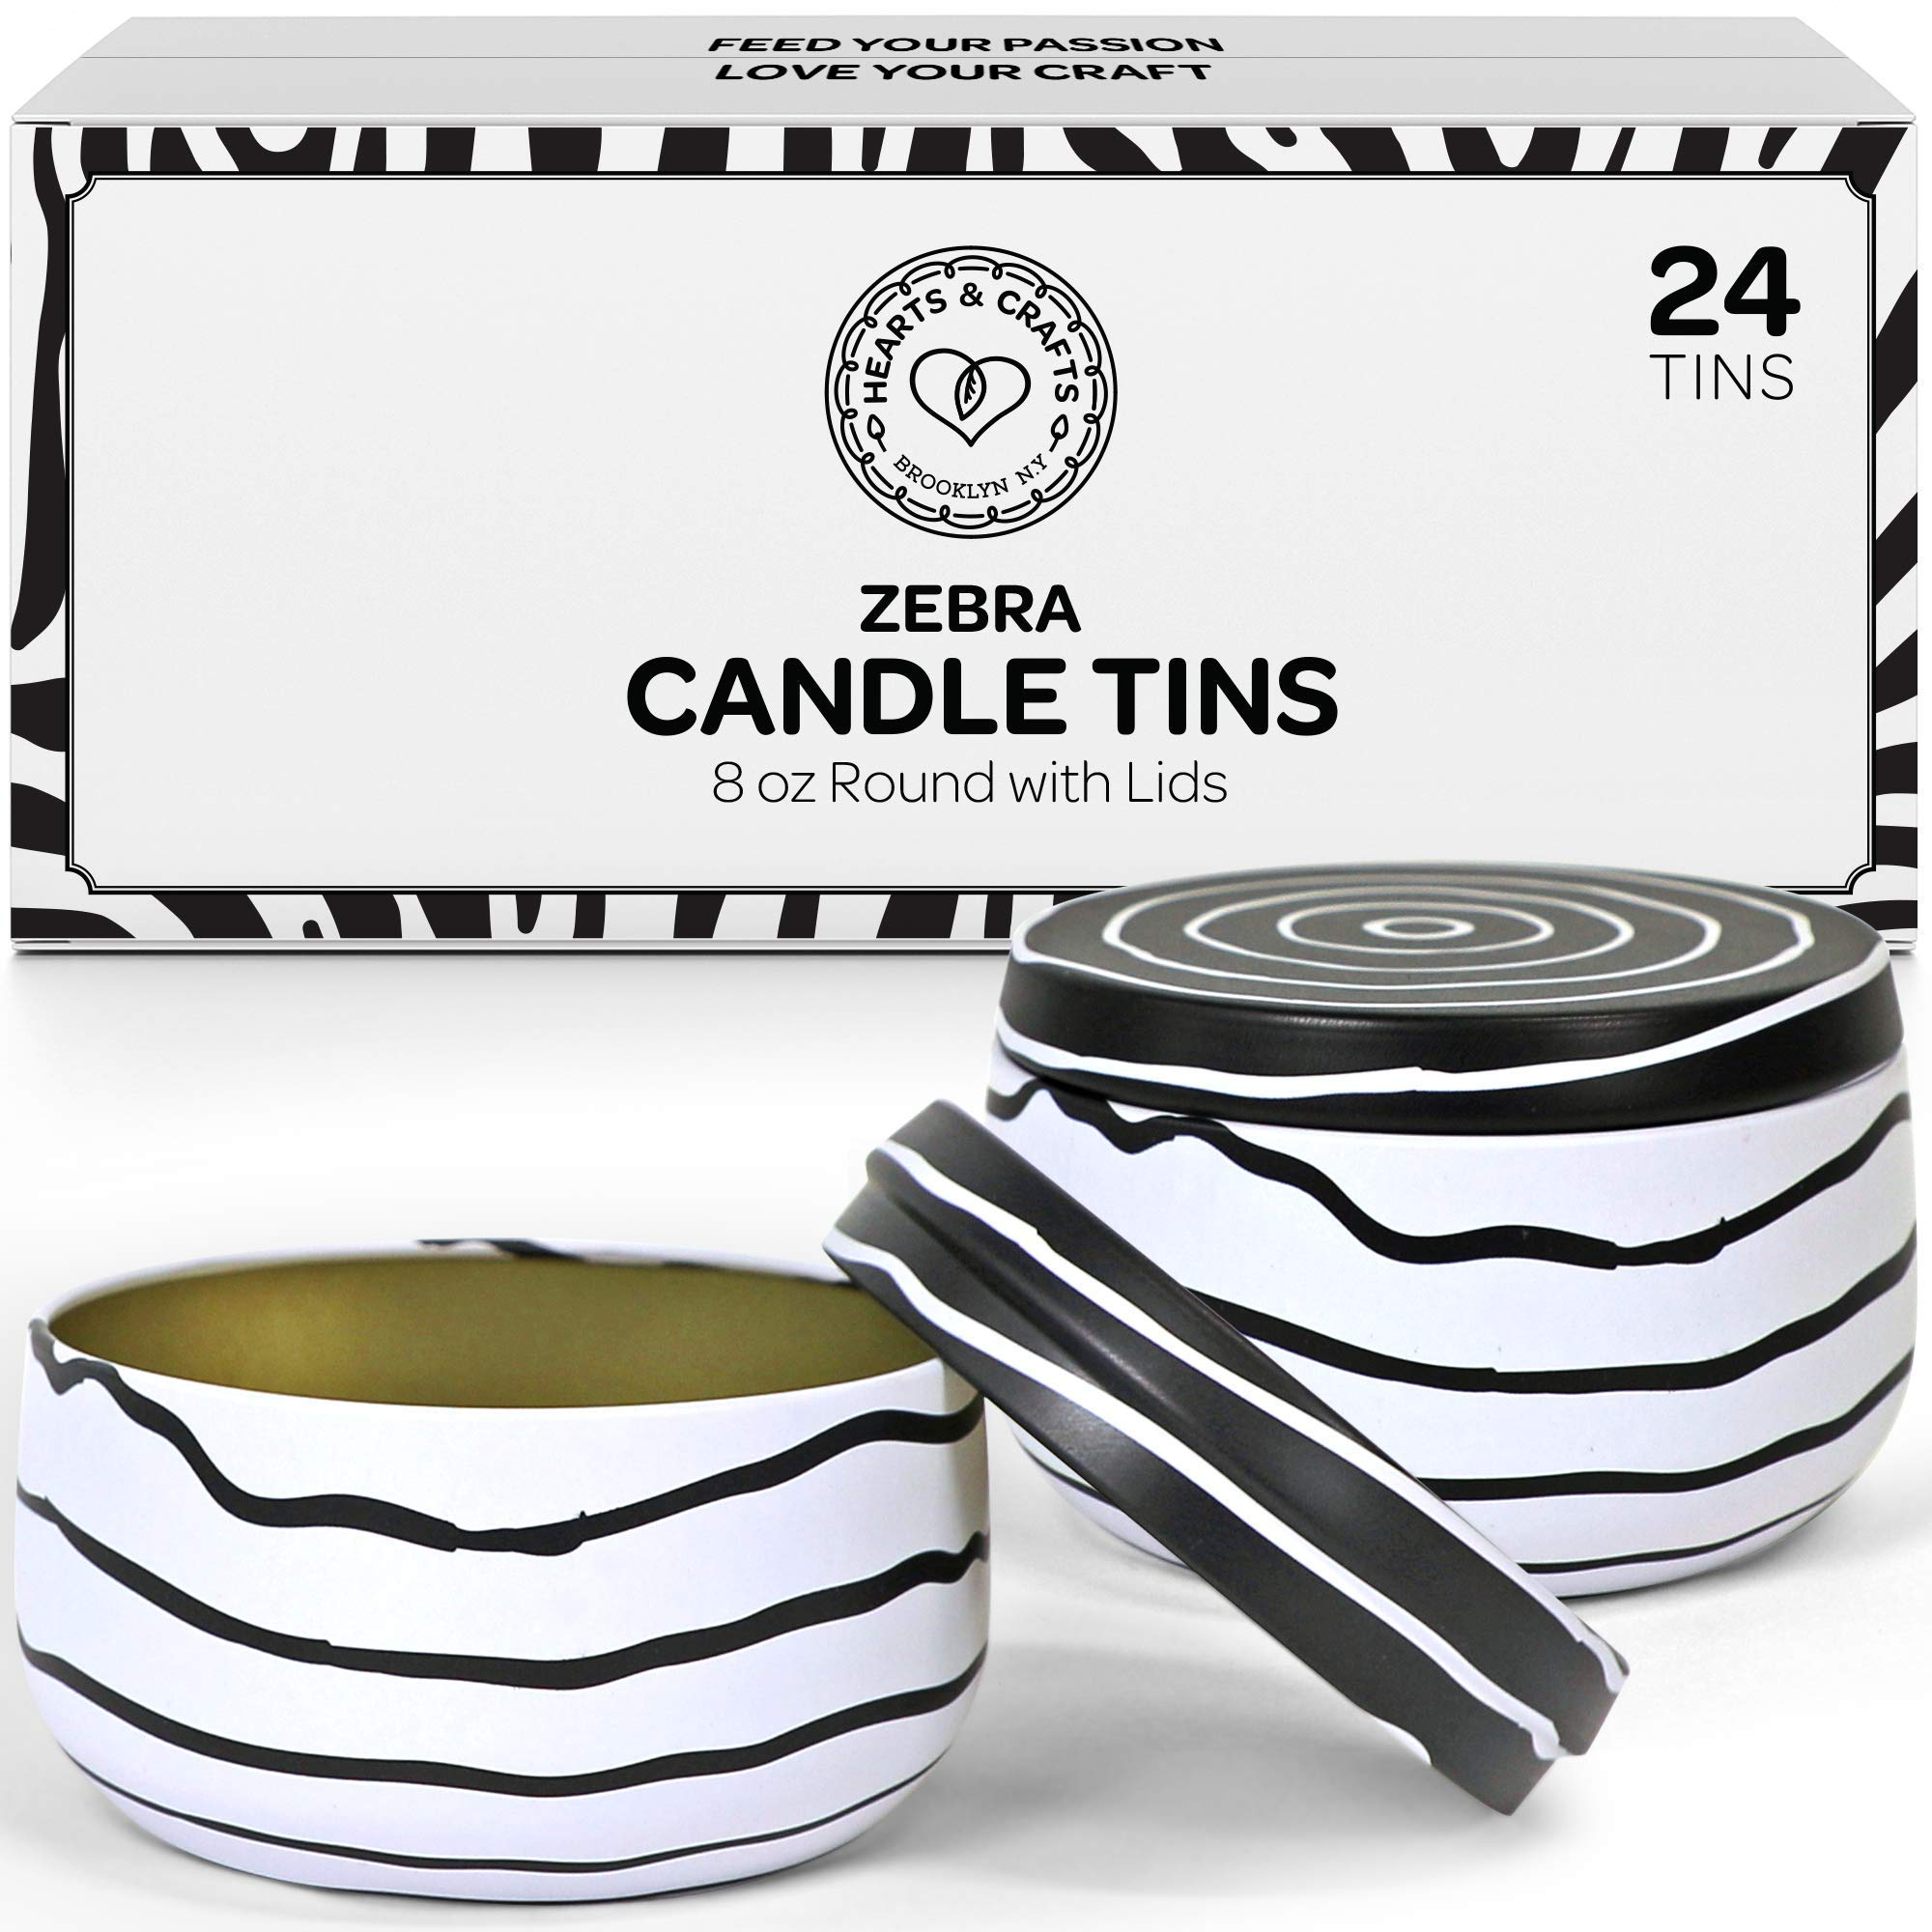 Hearts & Crafts Candle Tins with Lids - 8-oz. Zebra Tin Cans, 24-Pack - for Candles, Arts & Crafts, Storage, Gifts, and More